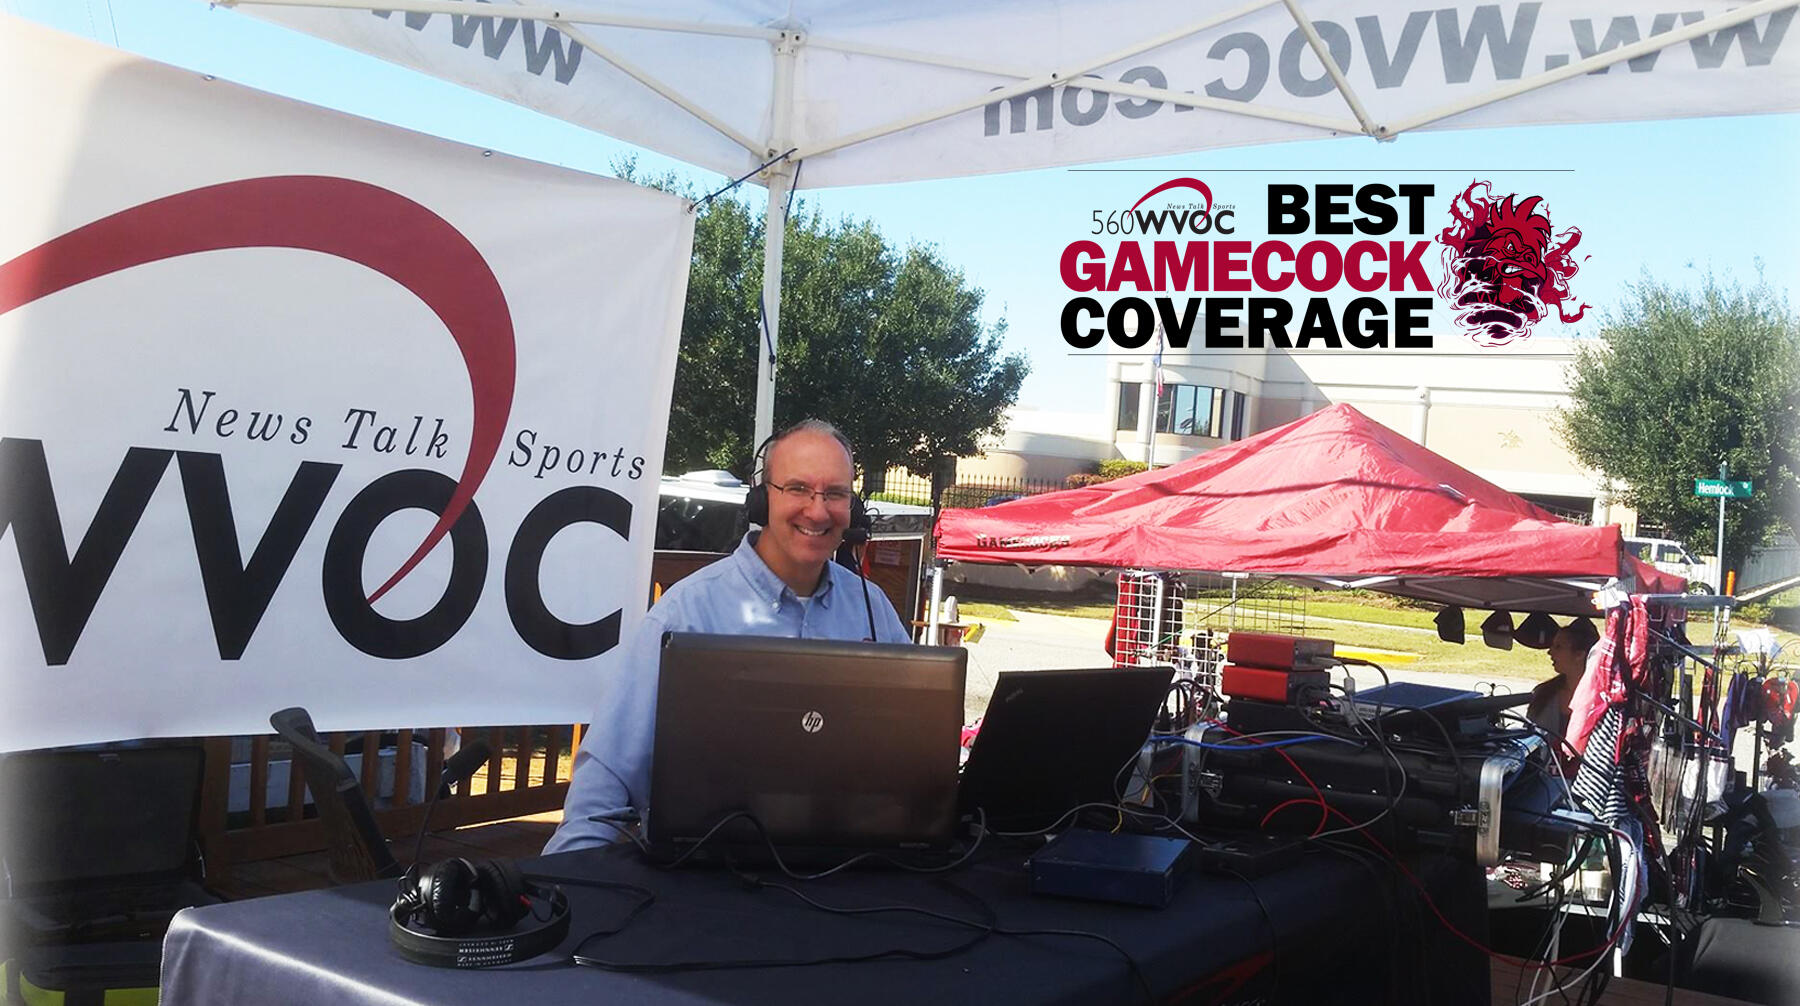 Best Gamecock Coverage